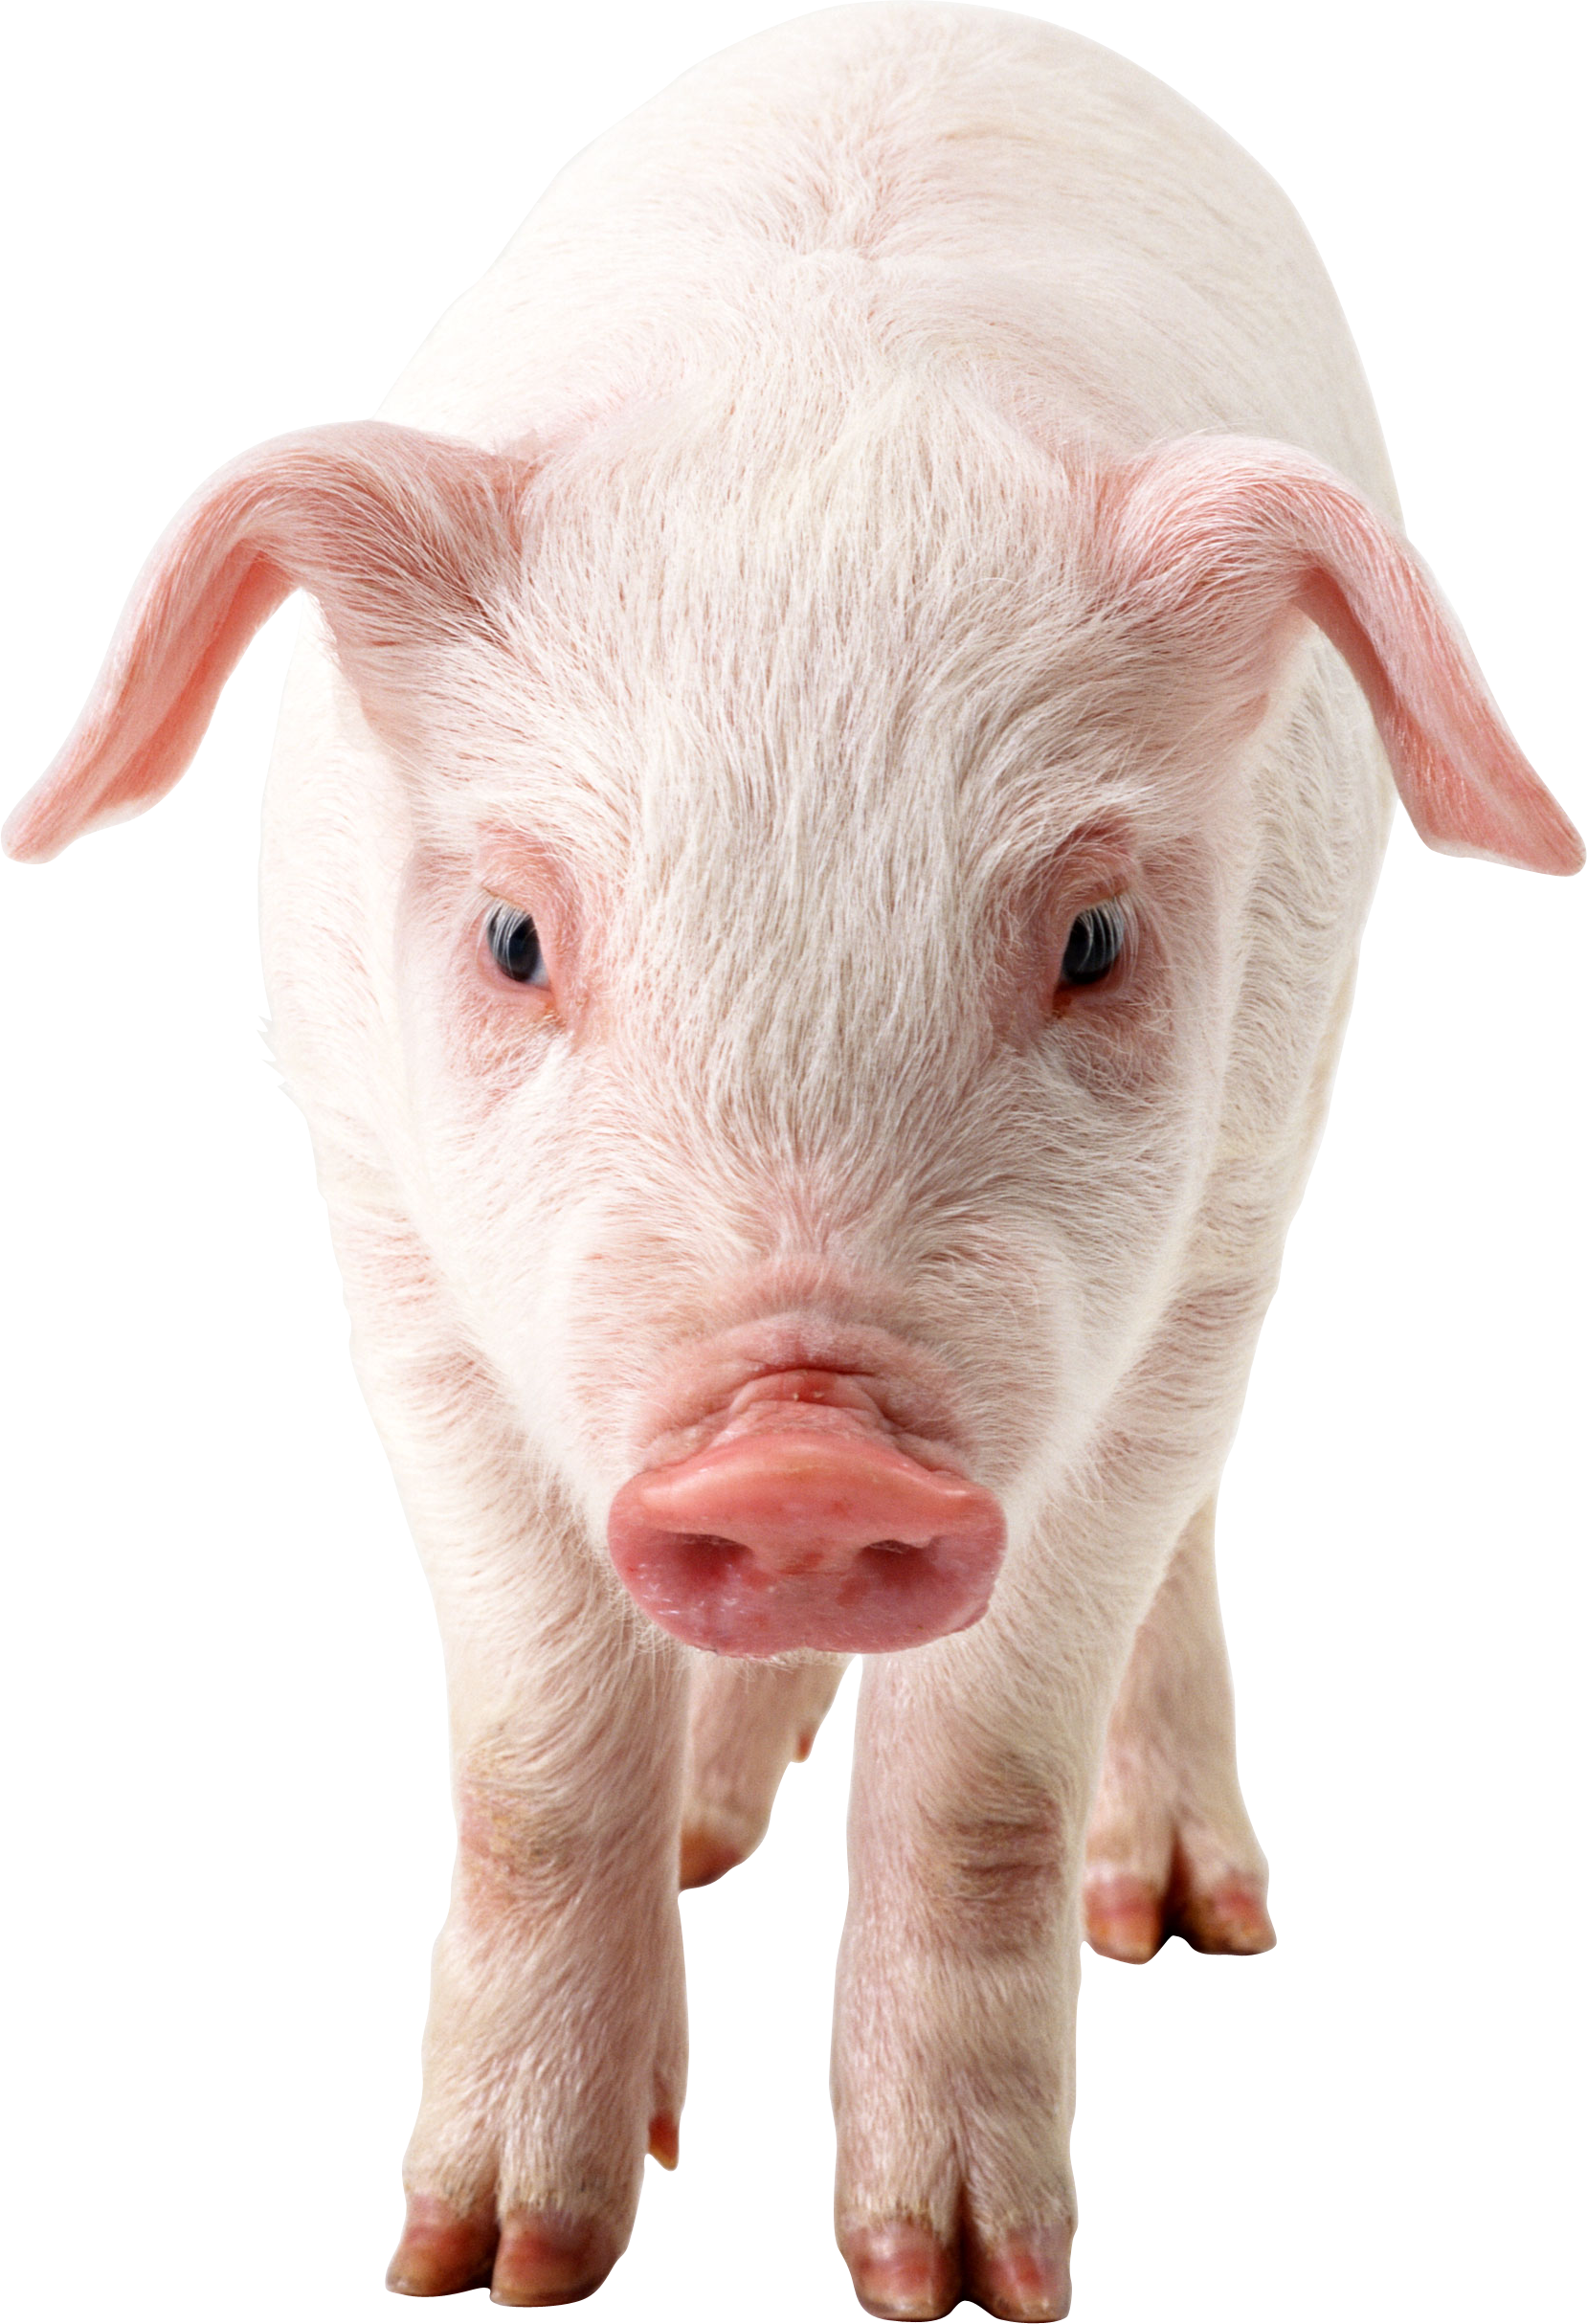 Pig PNG images, free picture download pigs.